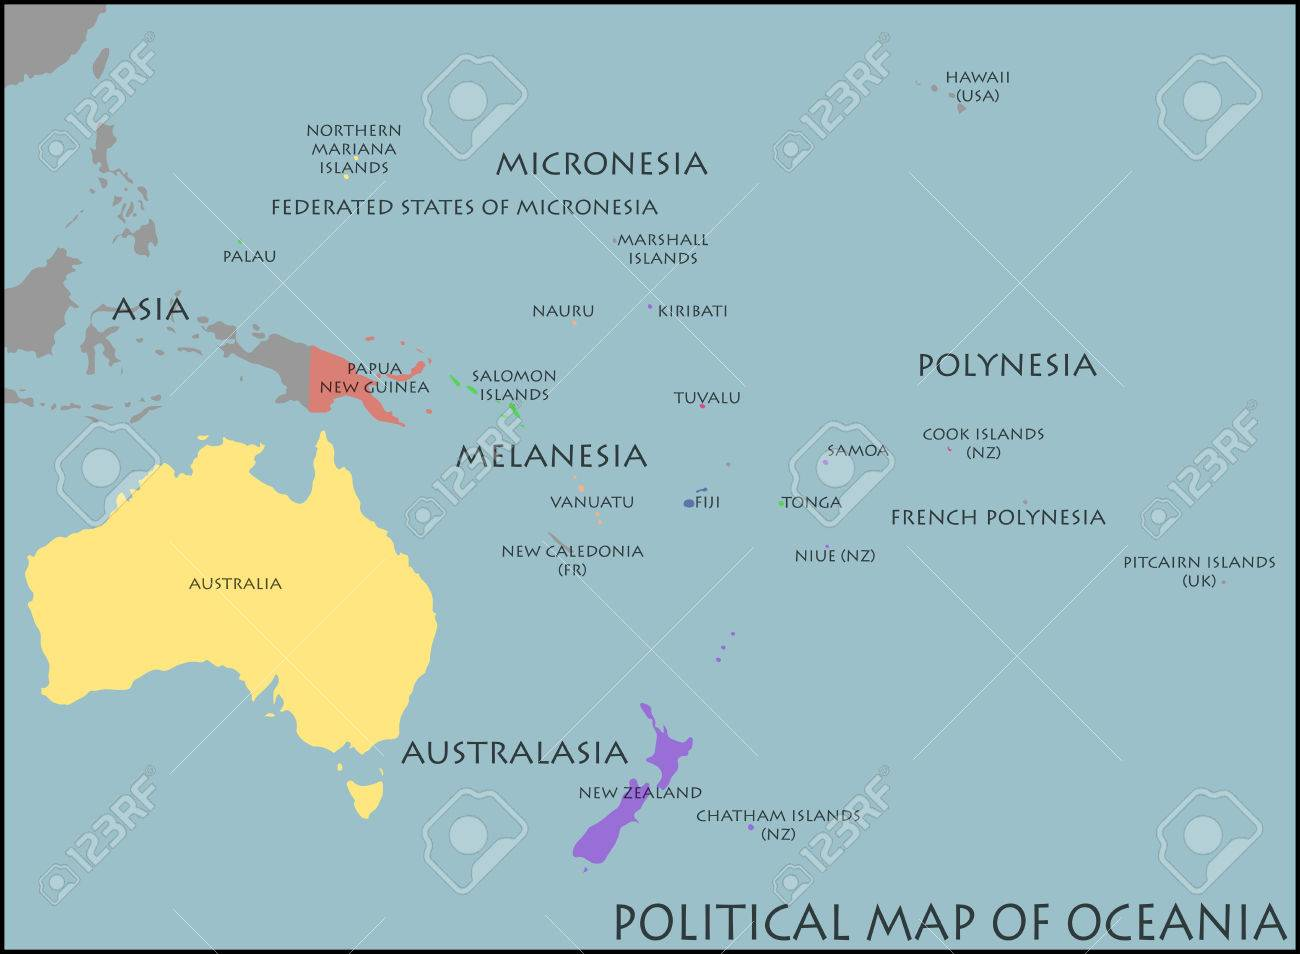 Political Map Of Oceania Royalty Free Cliparts Vectors And Stock